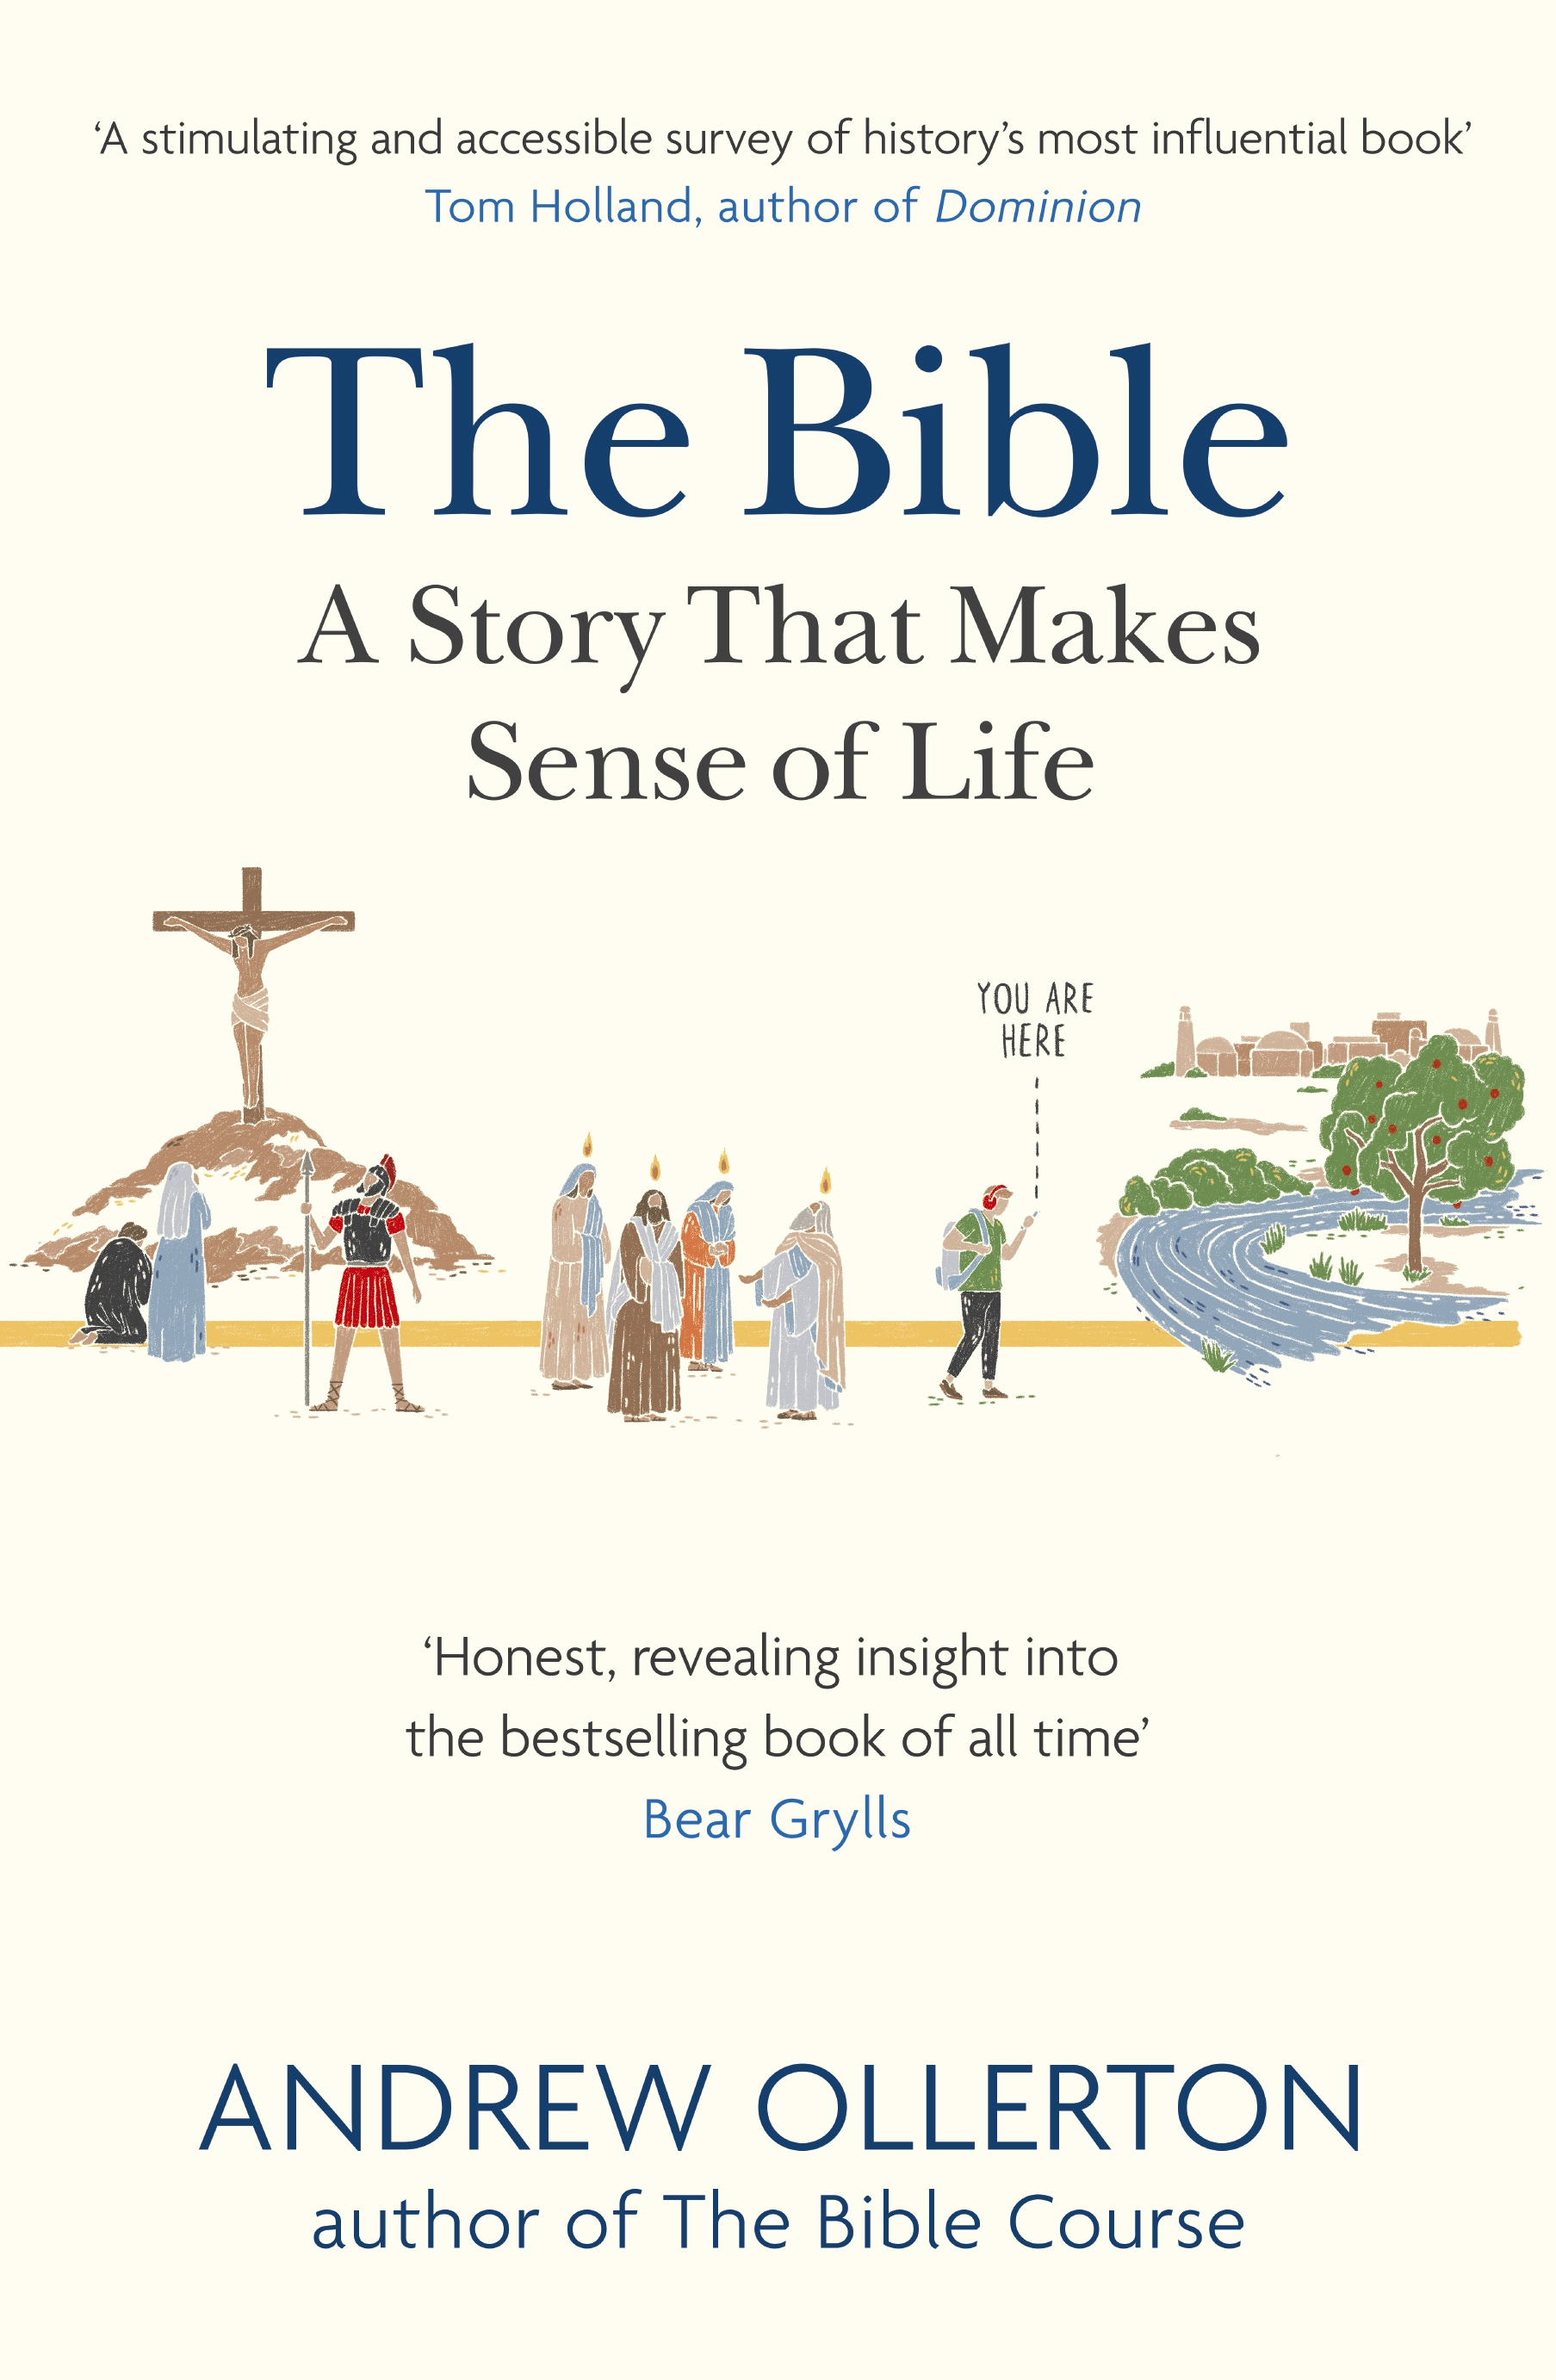 The Bible: A Story That Makes Sense of Life